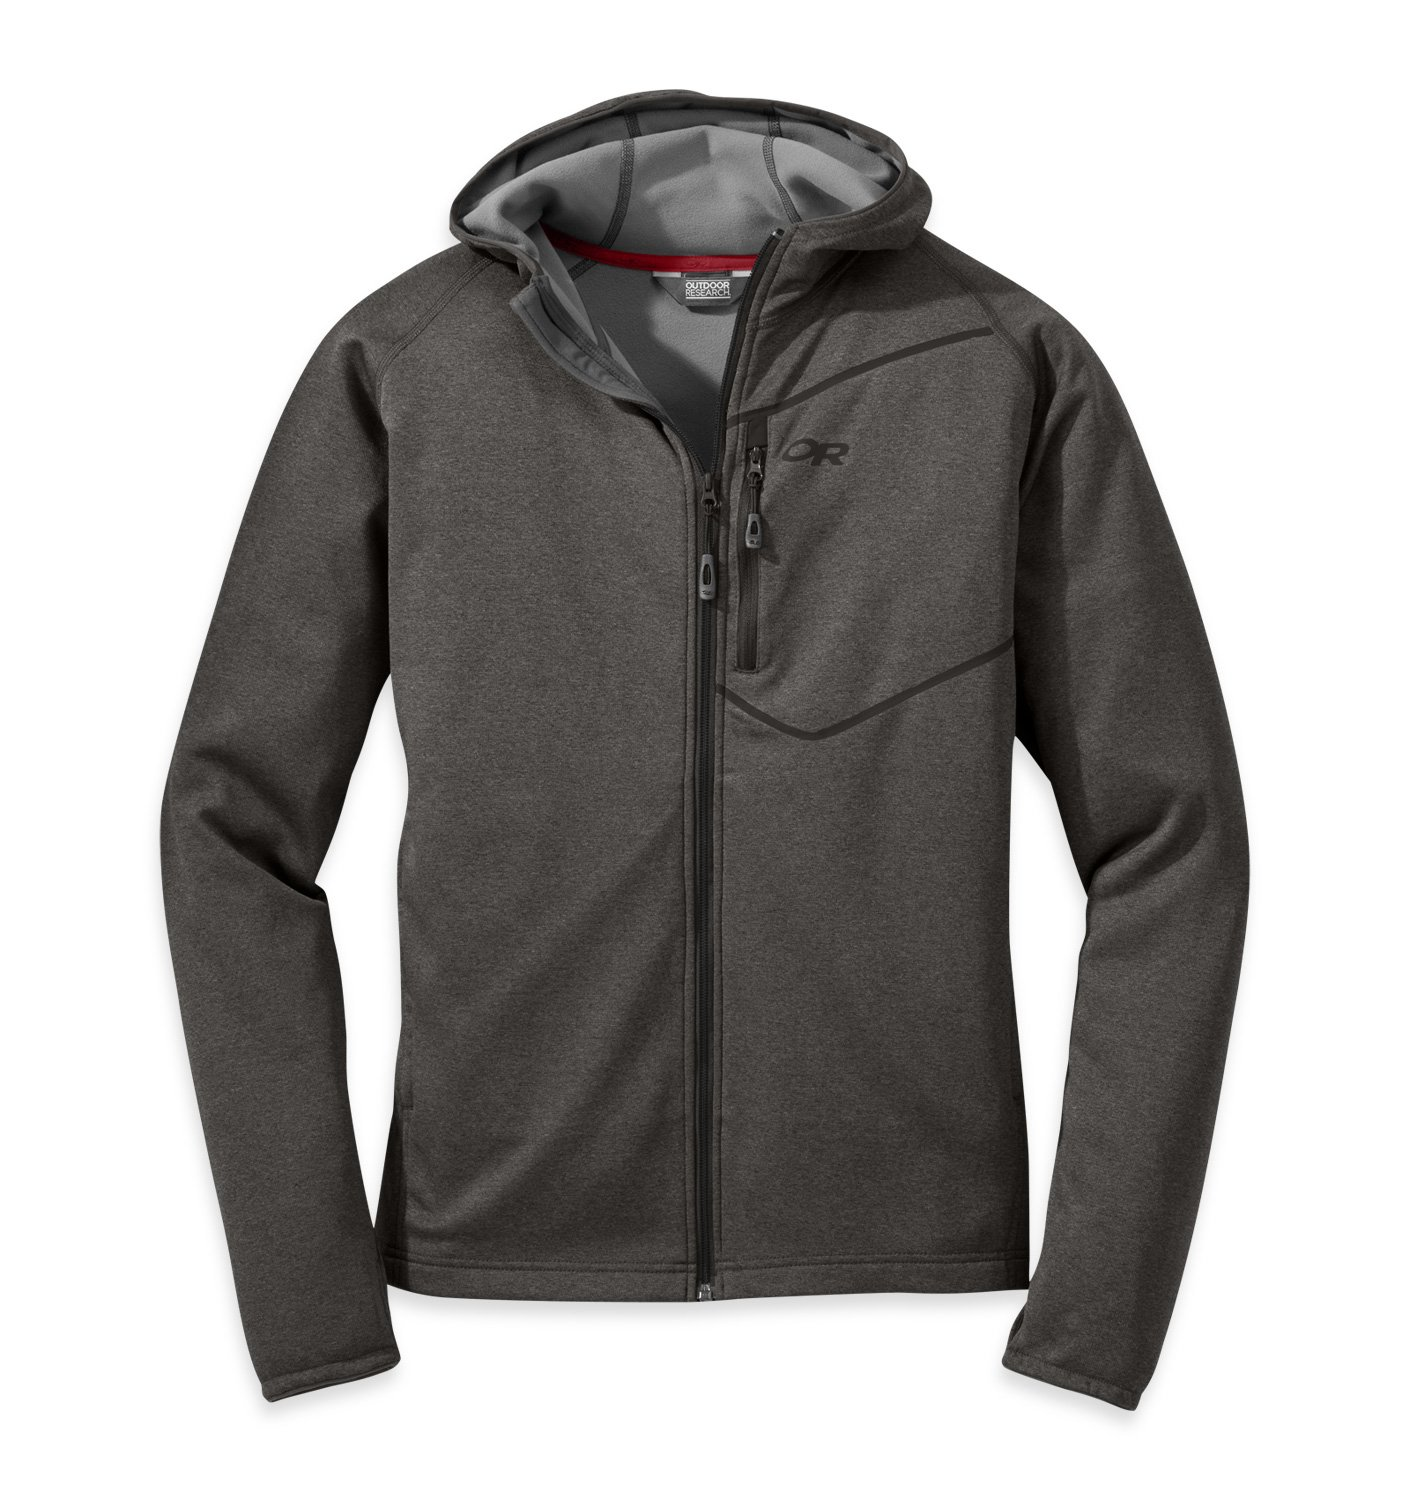 Outdoor Research Men's Starfire Hoody, Charcoal, S